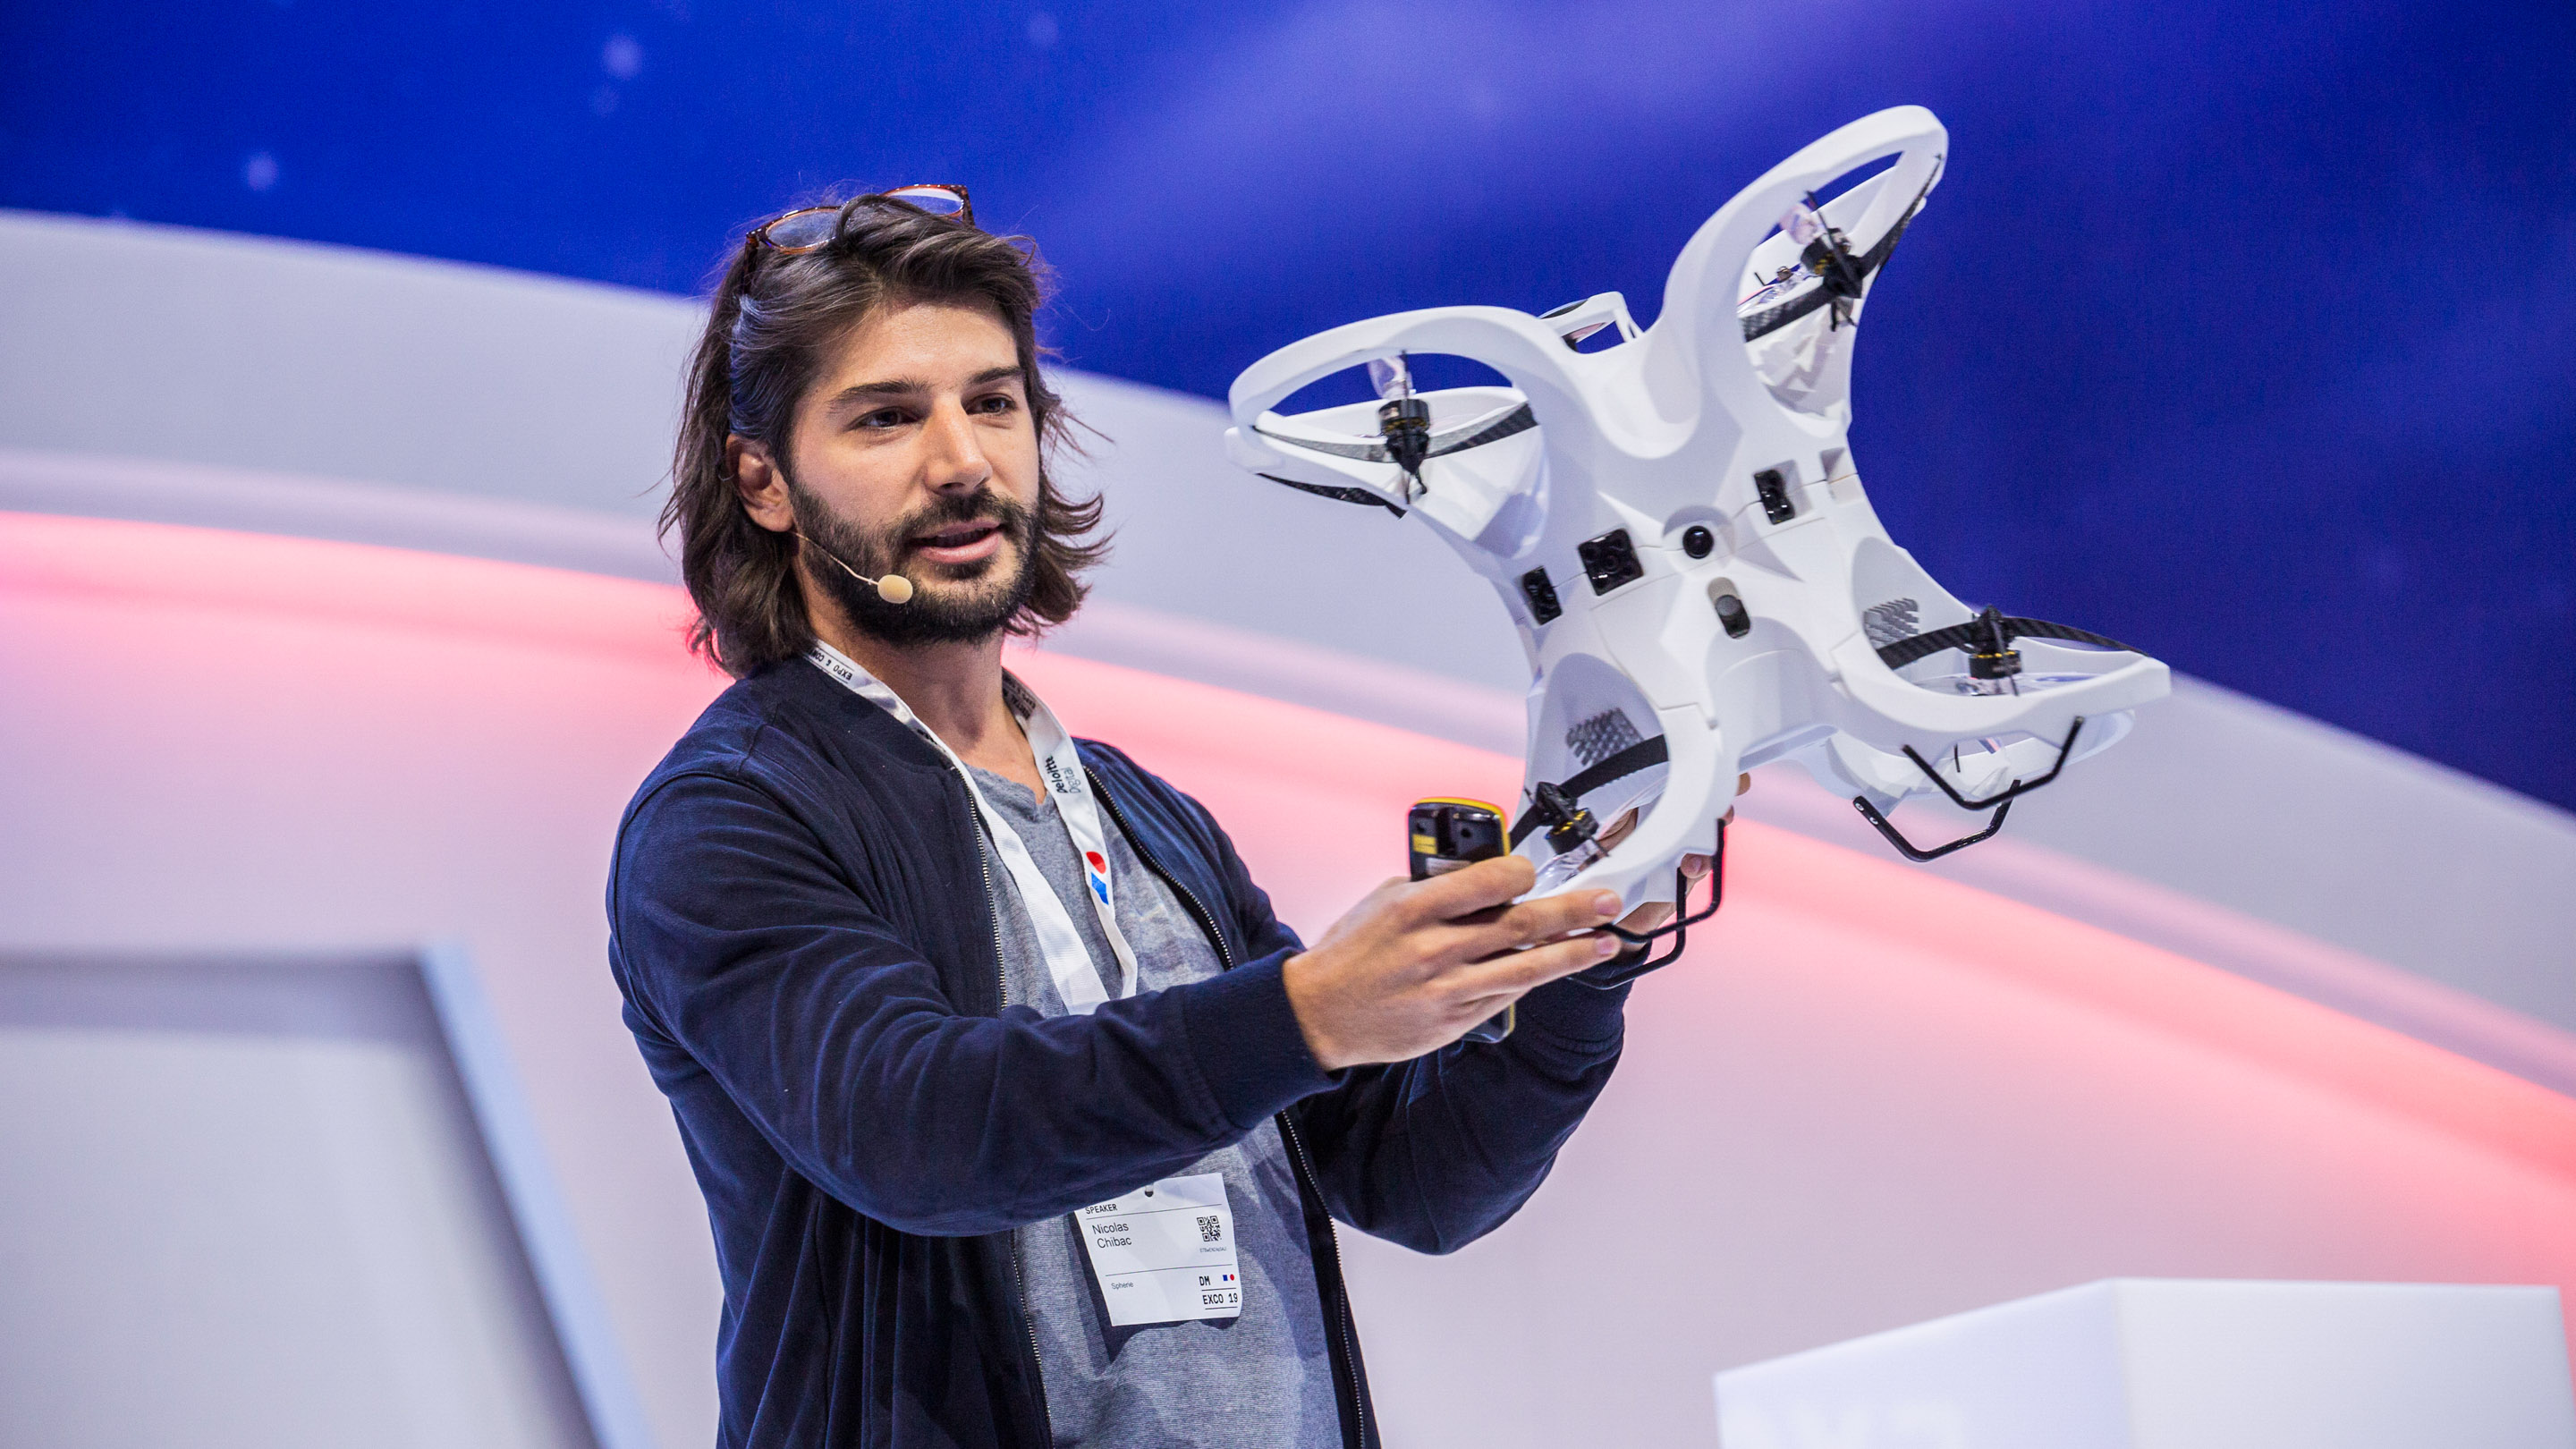 Experience Stage: Let's Fly into Another Reality – Using Drones to Capture 360° Virtual Reality Content, Speaker: Nicolas Chibac